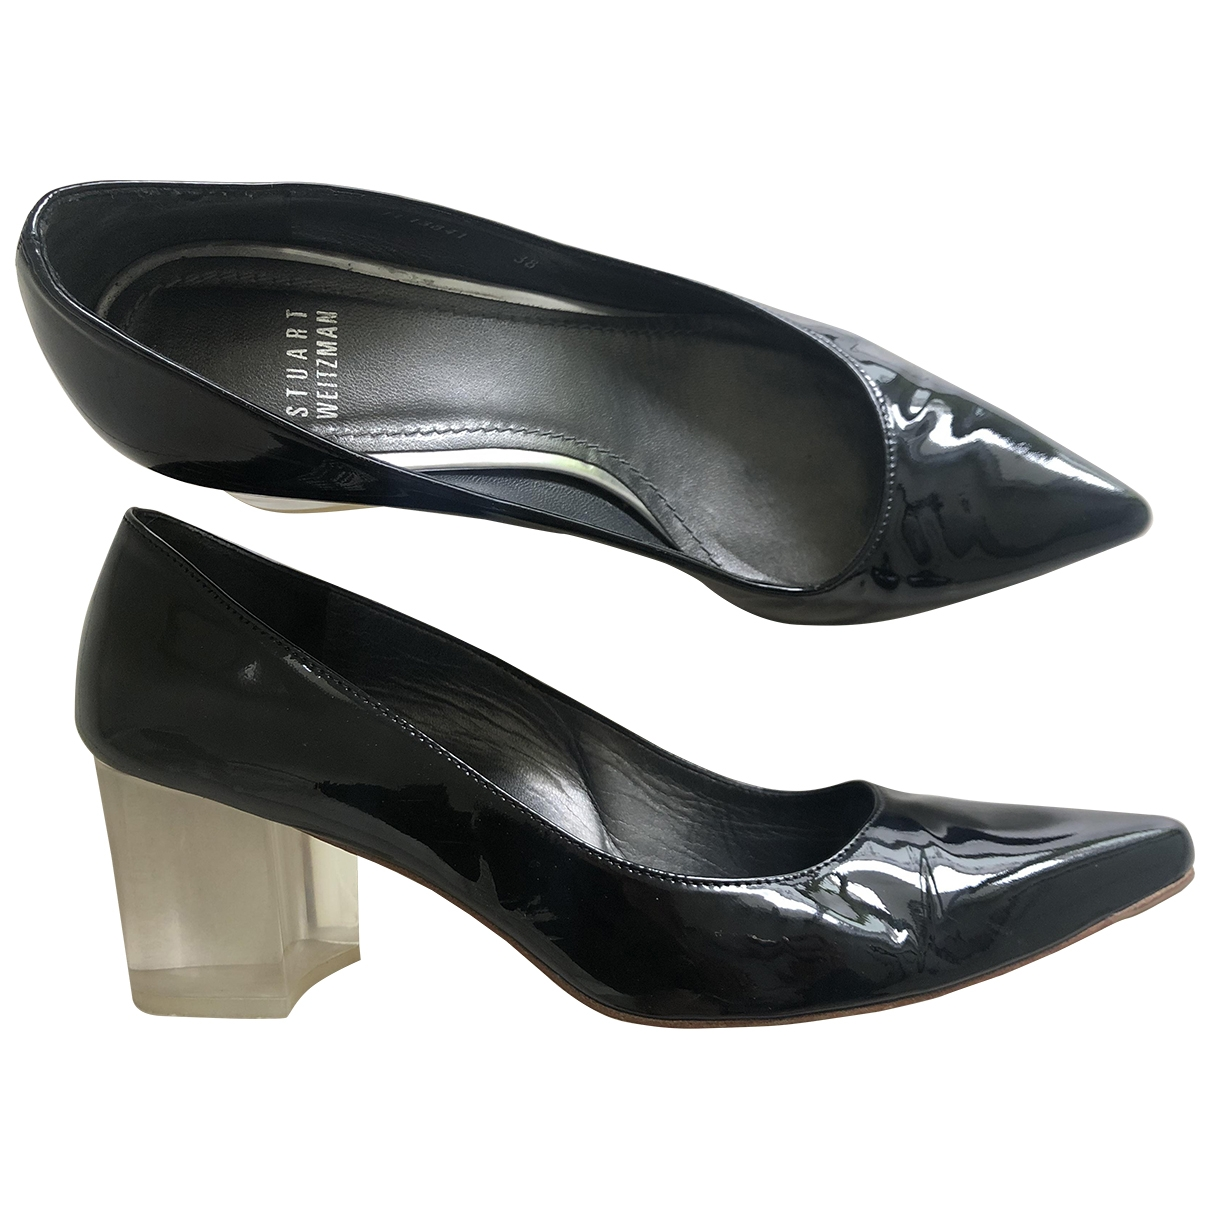 Stuart Weitzman \N Black Patent leather Heels for Women 38 EU